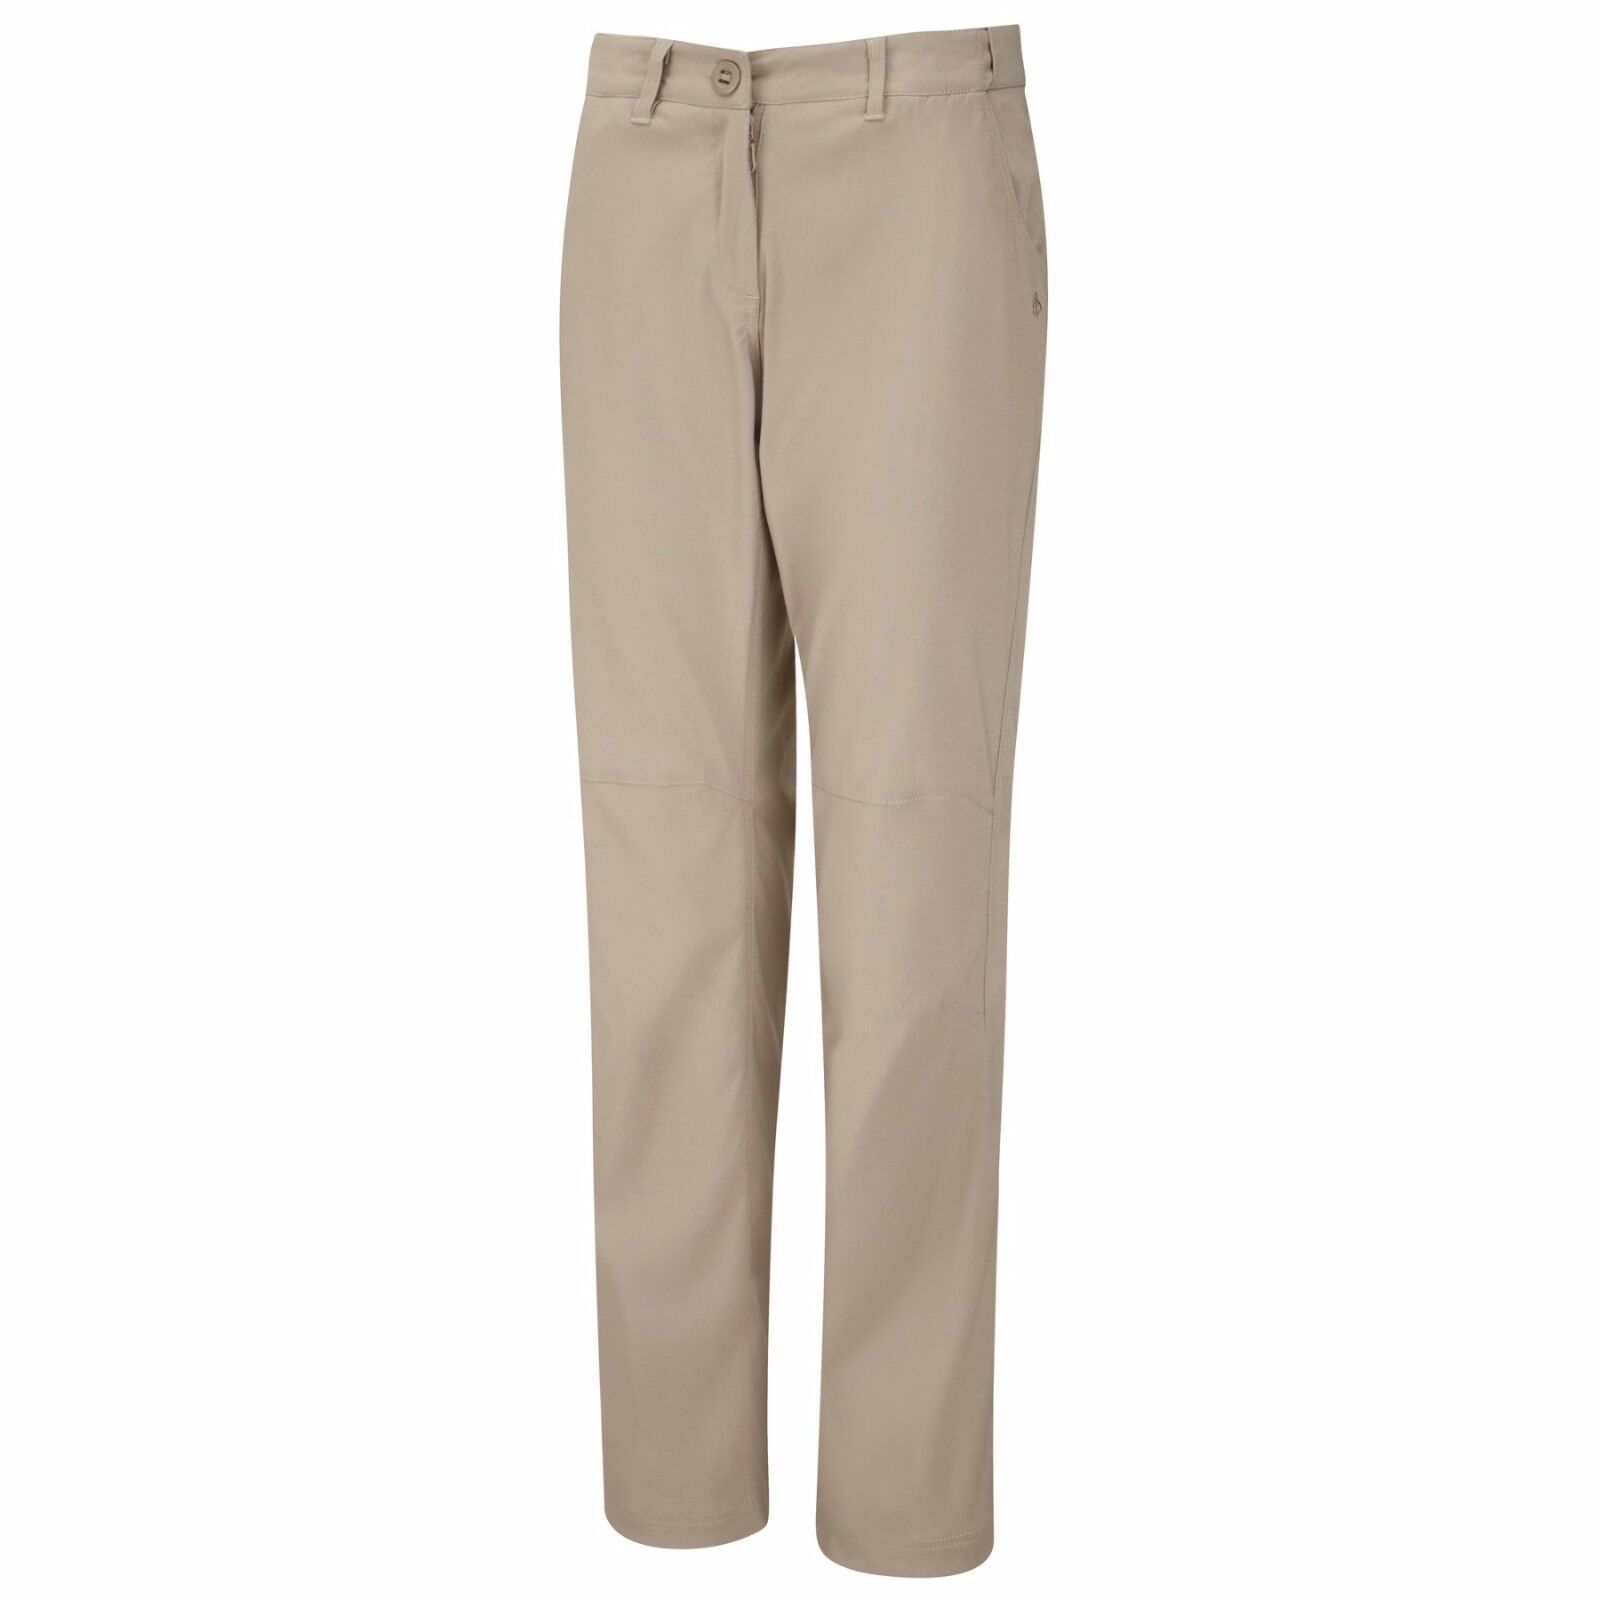 Craghoppers daMänner NosiLife Pro Stretch Mosquito Replant Trouser